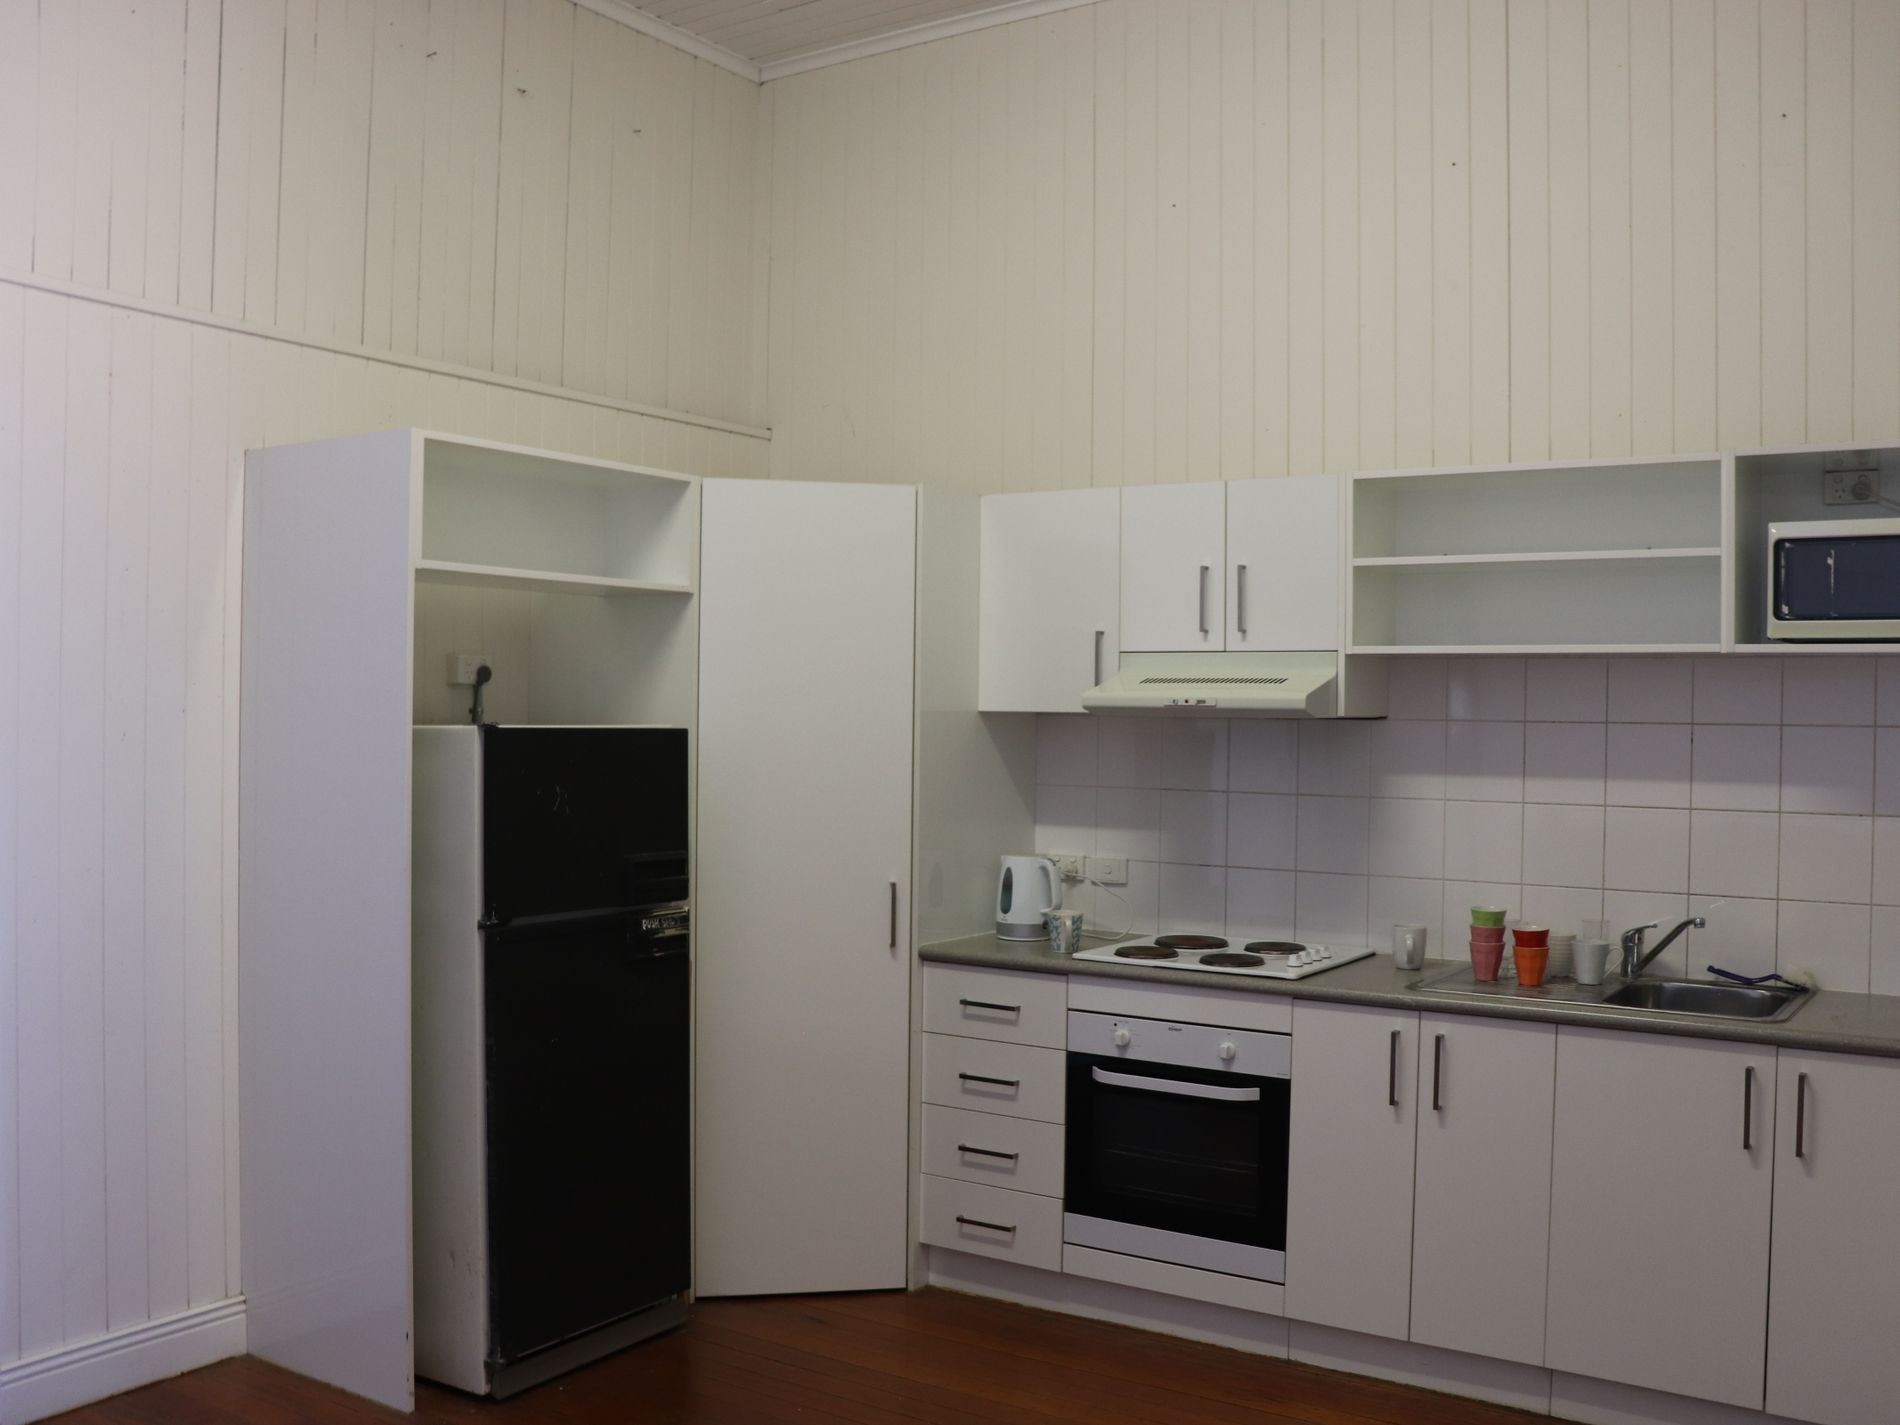 Tenancy D / 488 Ruthven Street, Toowoomba City